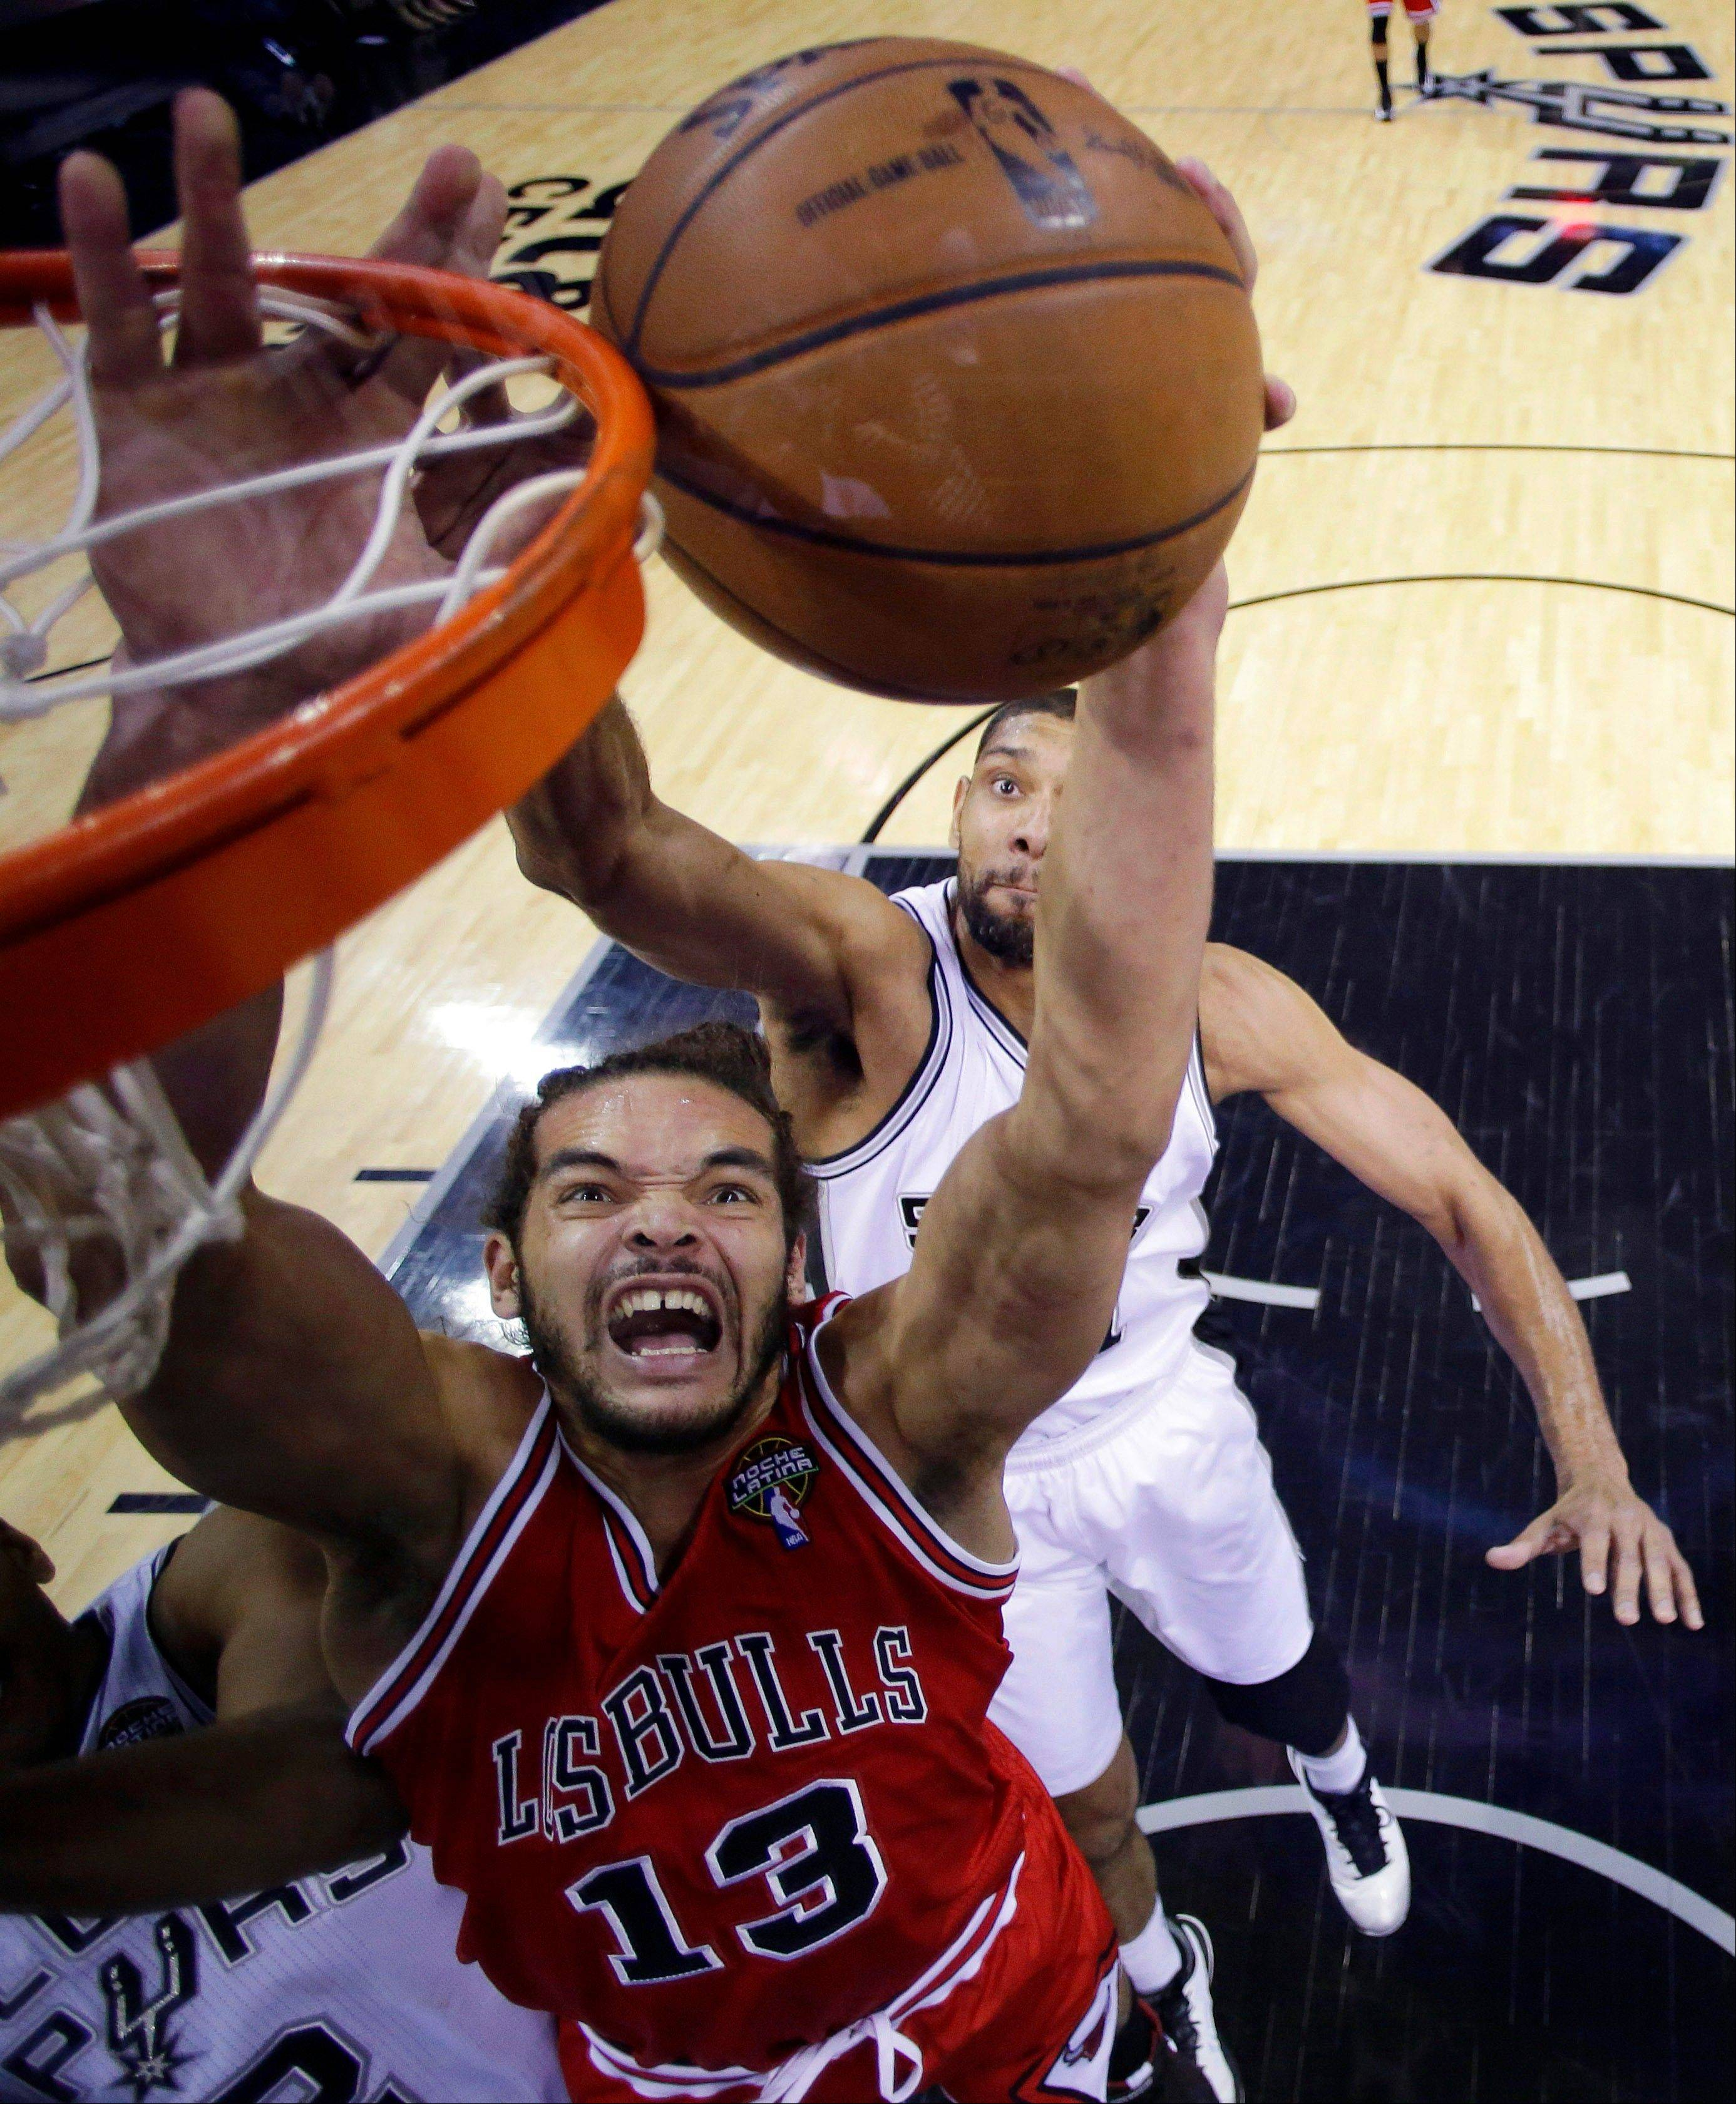 Bulls center Joakim Noah drives to the basket as the Spurs' Tim Duncan defends during the first half Wednesday night.